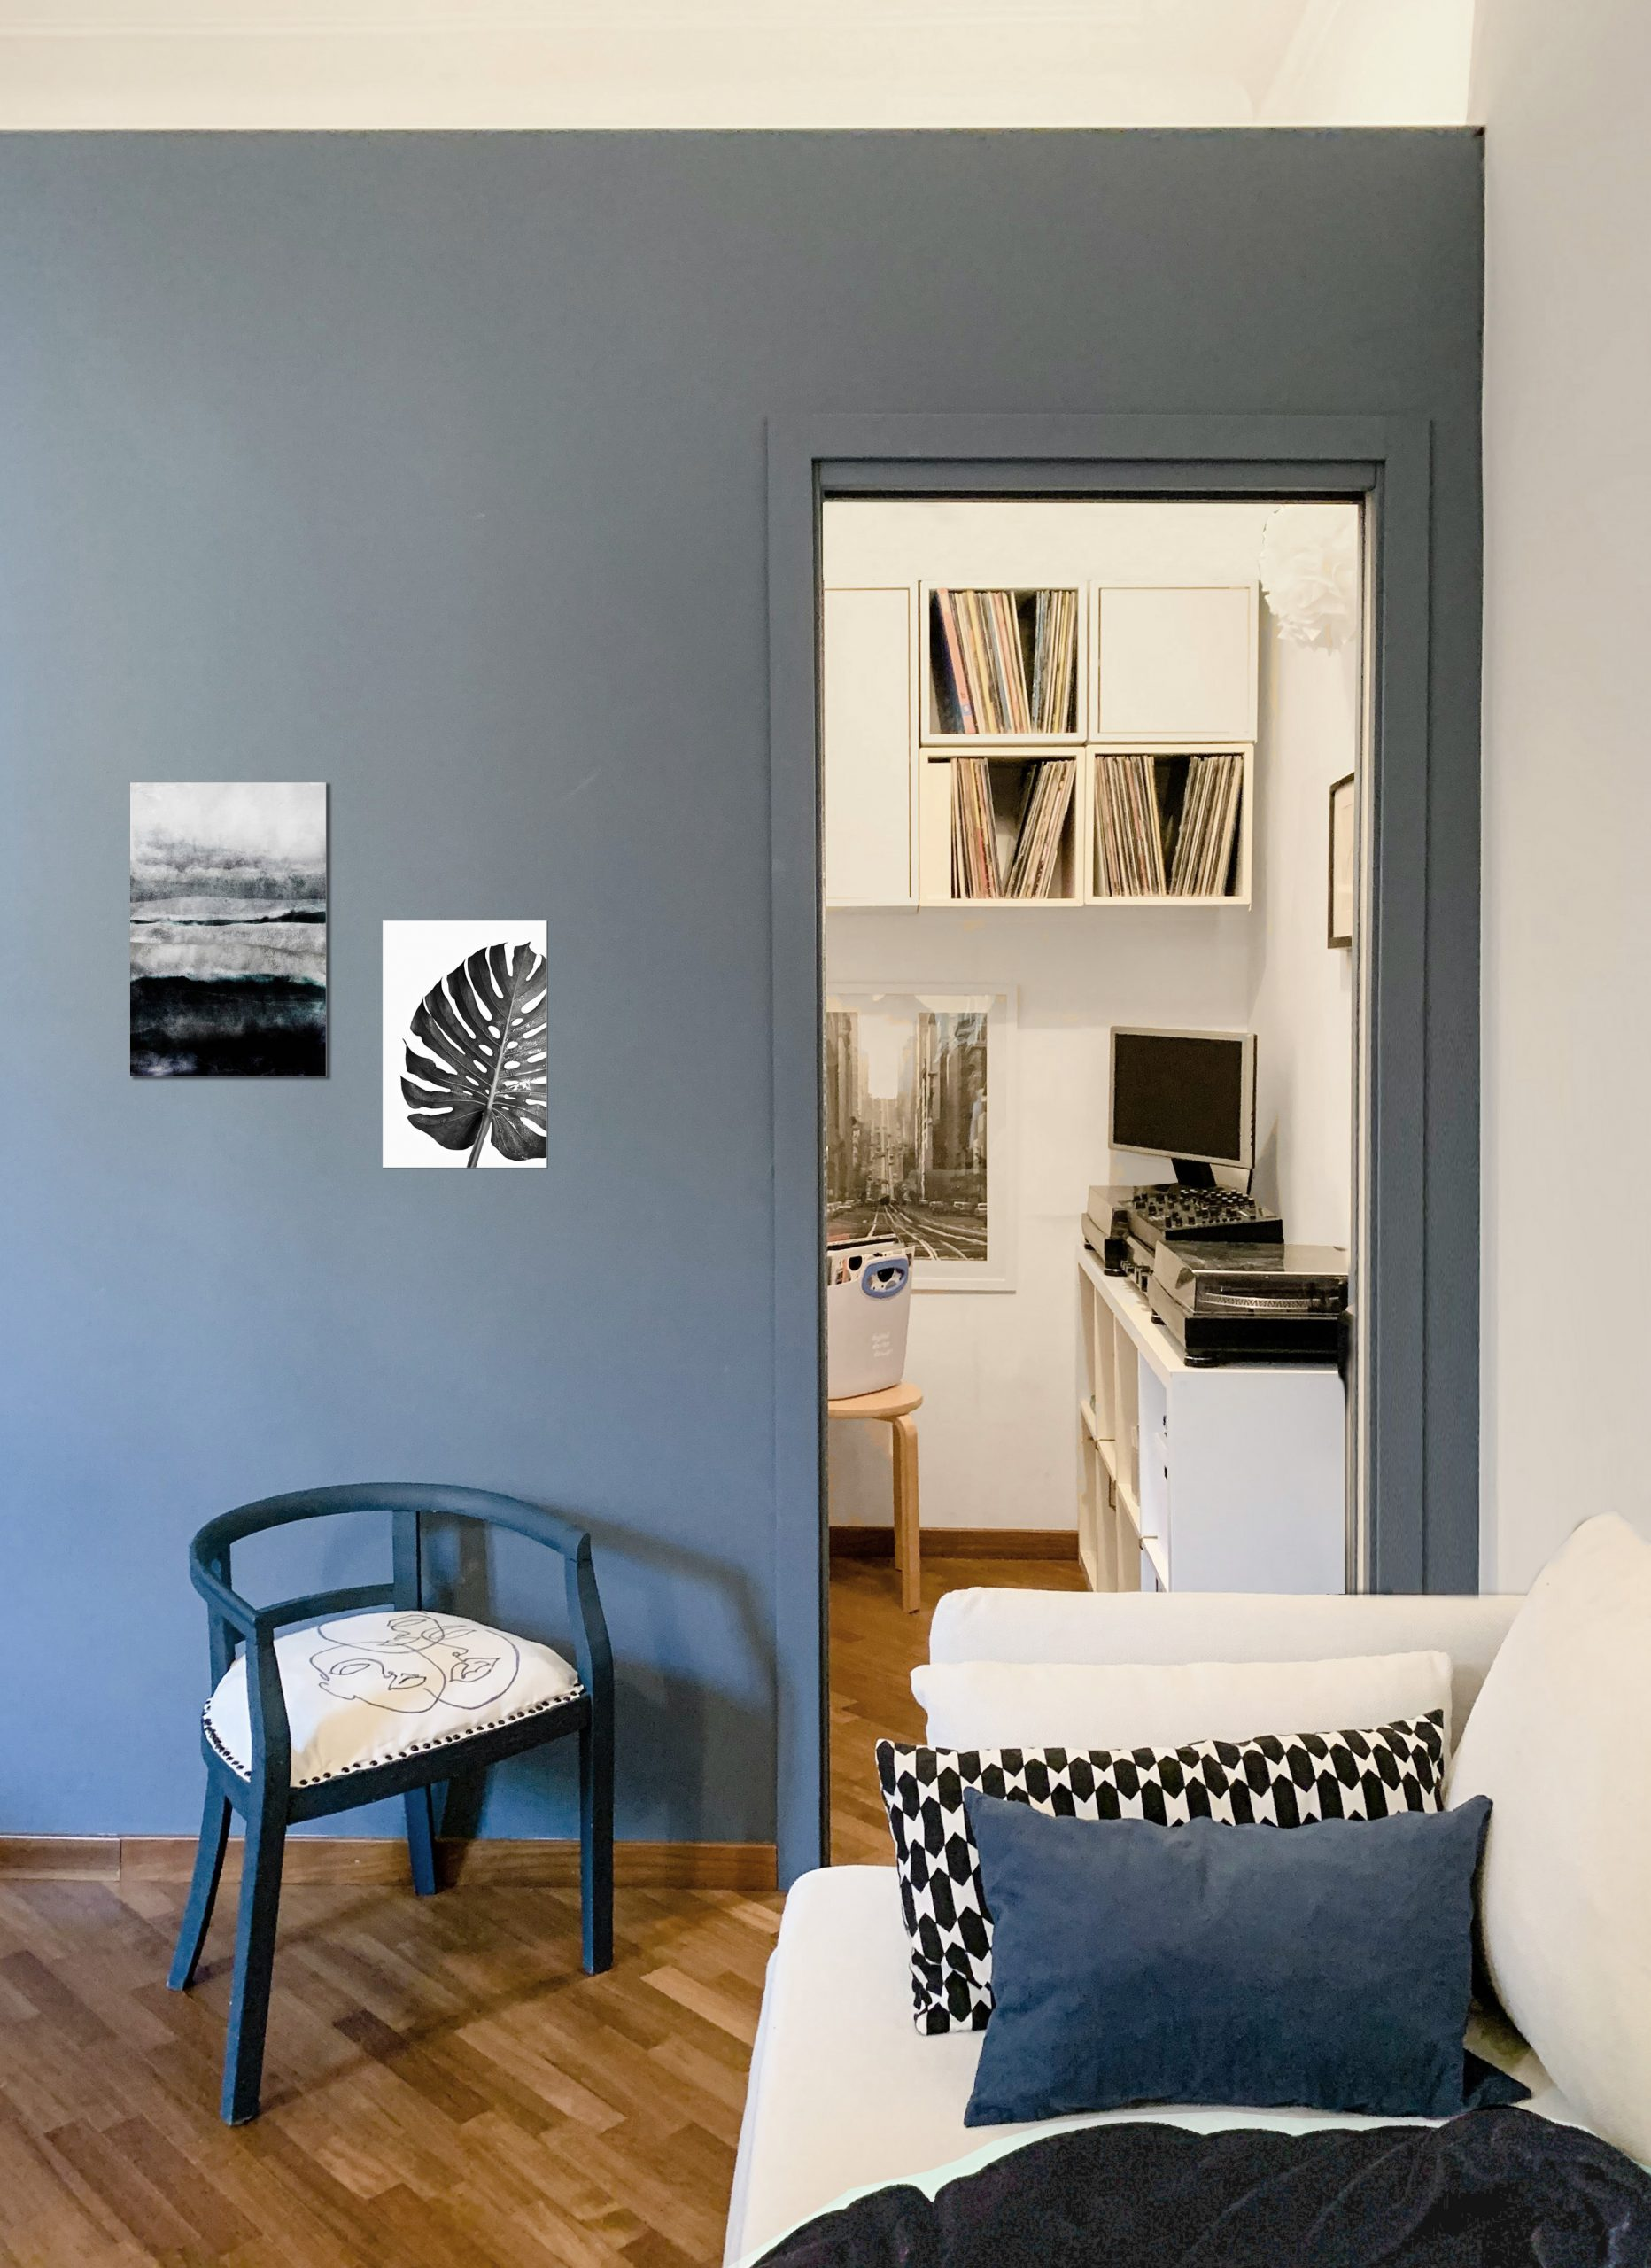 Home Tour - Simona Ortolan Nordic home in Milan